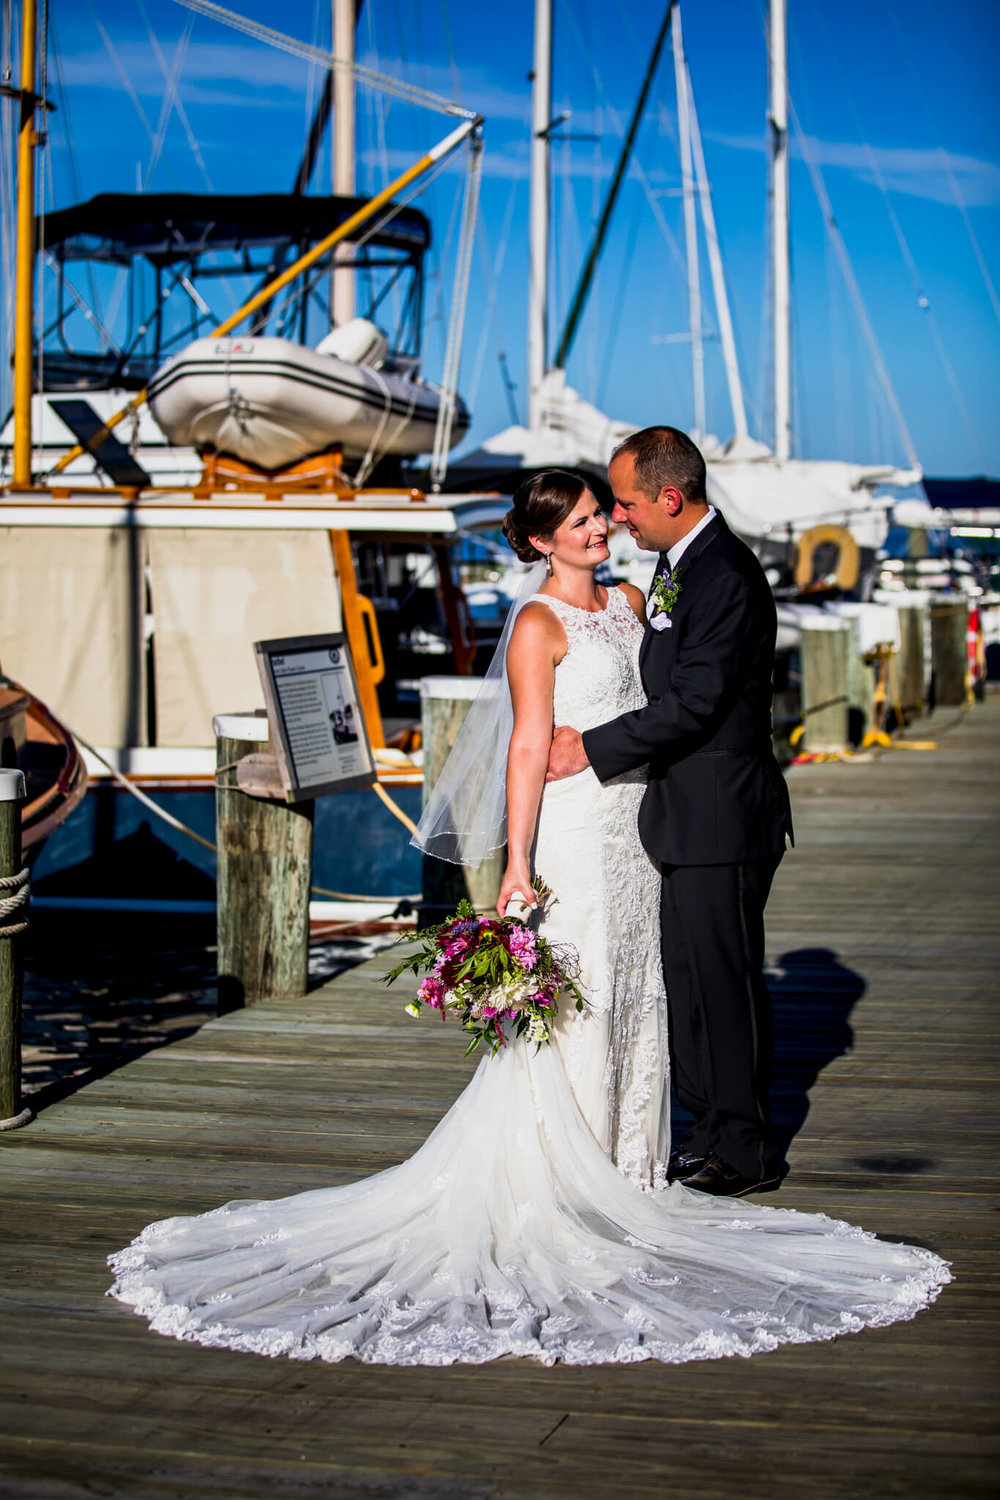 kate Matthew Chesapeake Maritime Museum MD Wedding-20.jpg